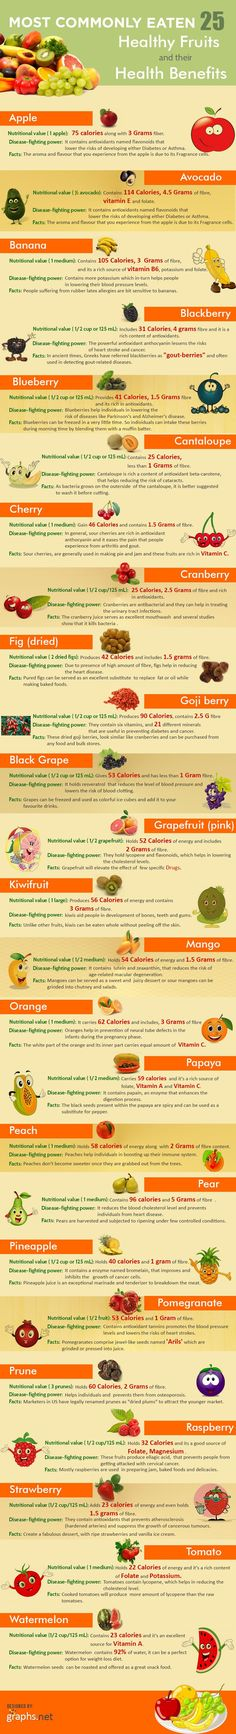 25 Healthy Fruits And Their Health Benefits Infographic. Bananas are very soothing to the gastrointestinal tract because of the high content of the soluble fiber pectin. The pectin helps to normalize bowel function and has shown some promise for the treatment of peptic ulcers. They also contain compounds called protease inhibitors which help eliminate harmful bacteria like H. Pylori. - If you like this pin, repin it, like it, comment and follow our boards :-) #FastSimpleFitness